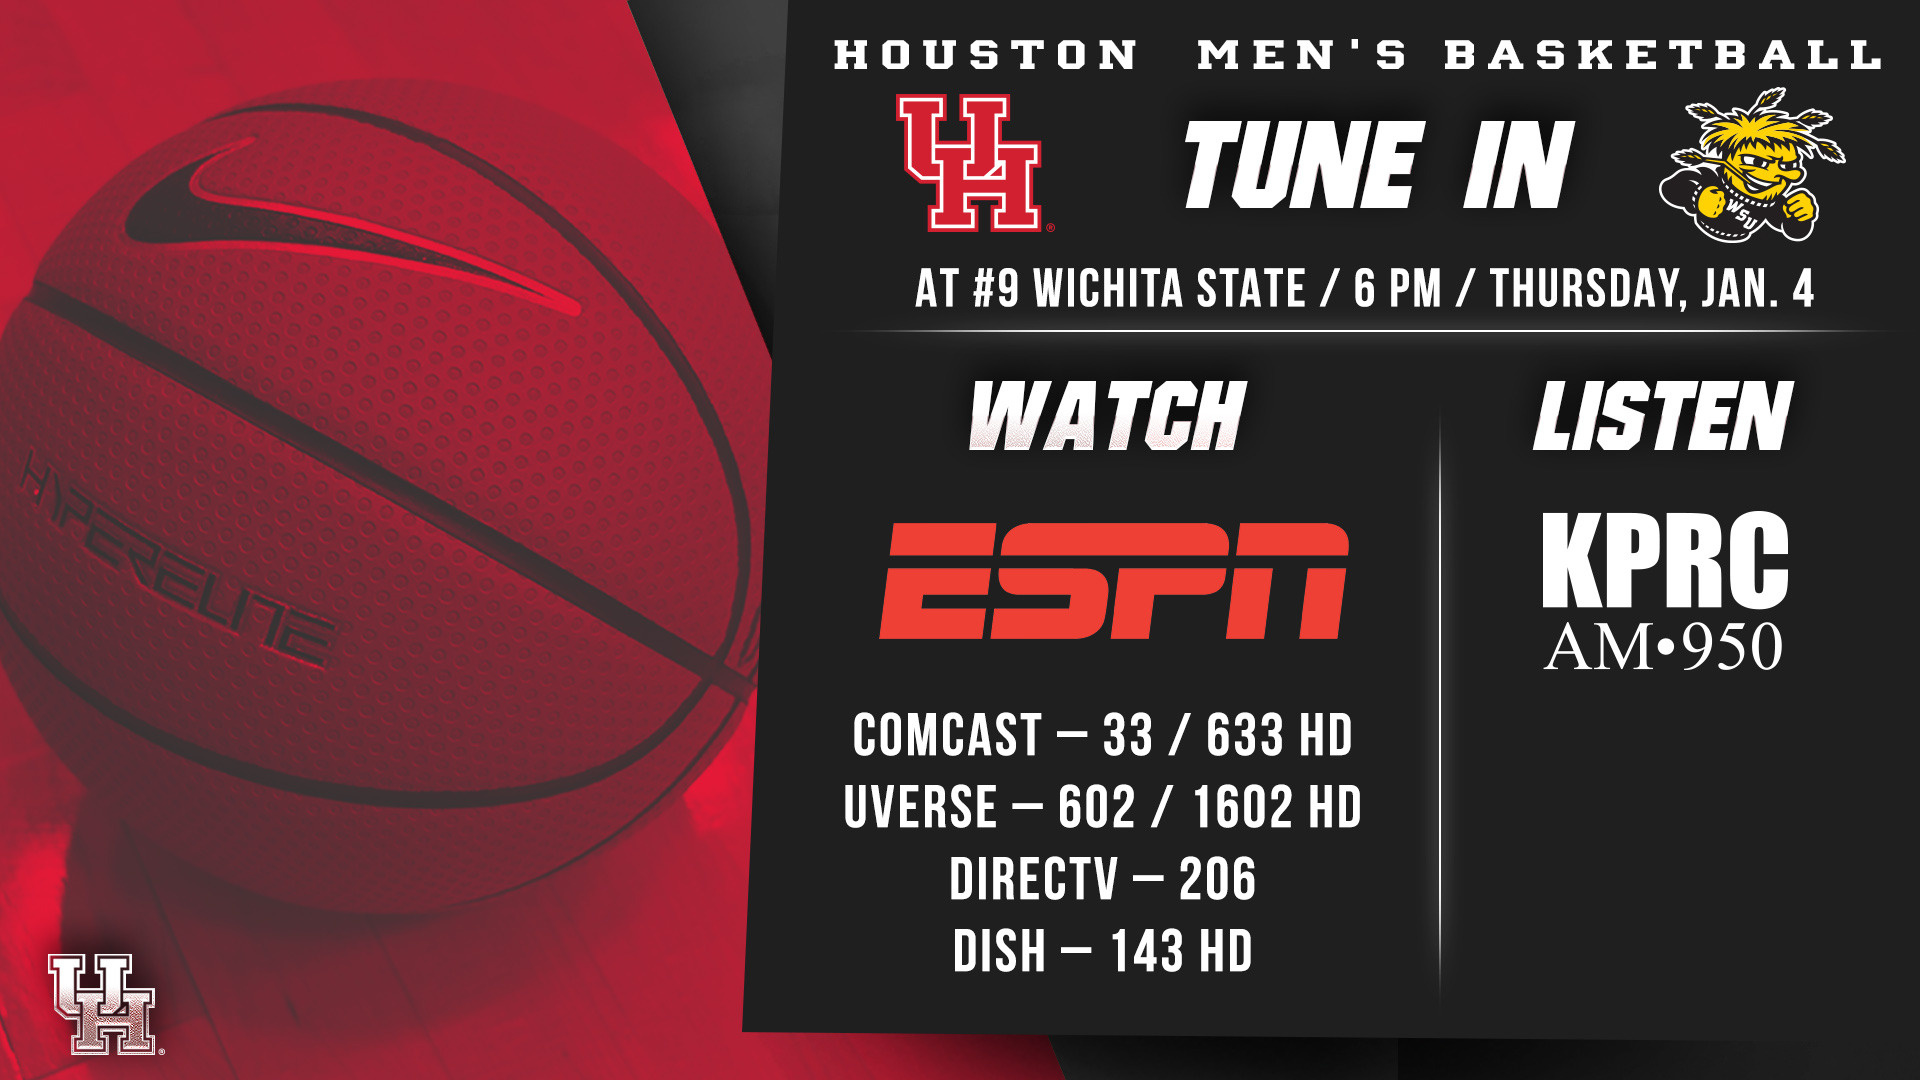 Cougars Travel To Wichita State Thursday 6 Pm On Espn L 81 63 Uverse Record Brings A 11 2 Overall And 1 0 Mark In American Athletic Conference Place Into Thursdays Game Shockers Are Ranked No